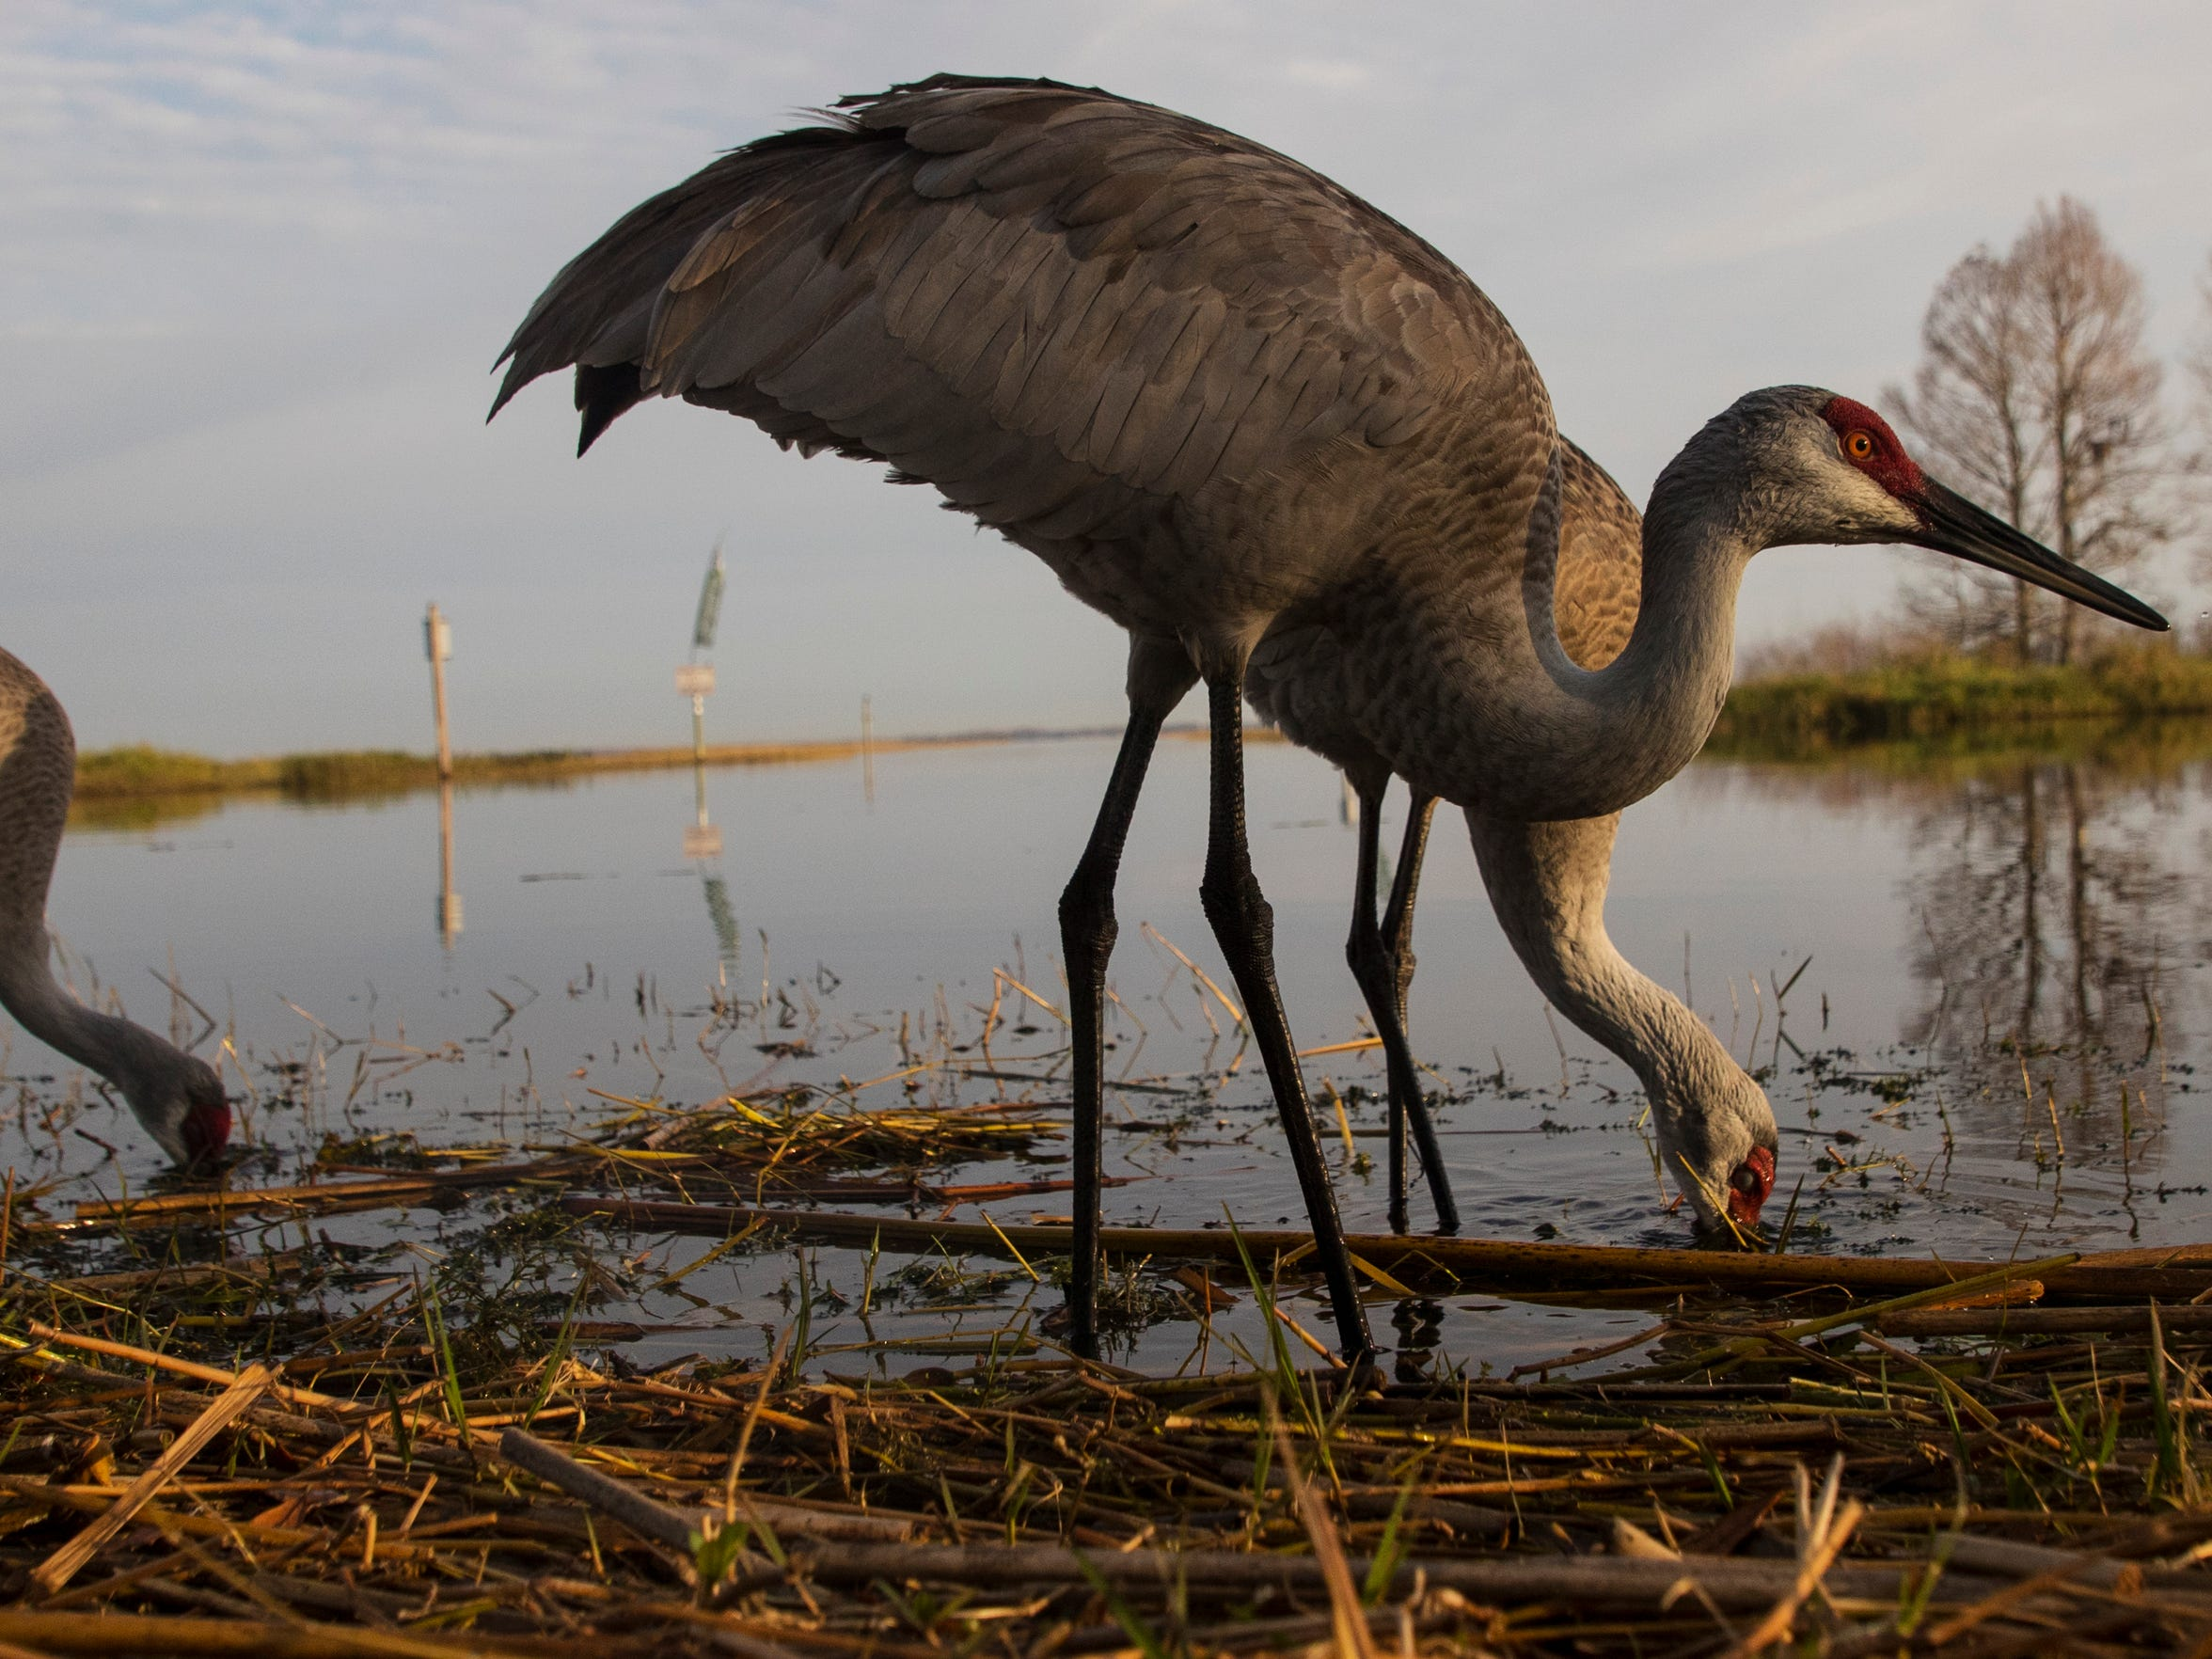 Sandhill cranes feed on the south end of Lake Tohopekaliga at Boggy Creek Outfitters in early February of this year. Wildlife, especially birds is abundant along the Kissimmee River and chain of lakes.